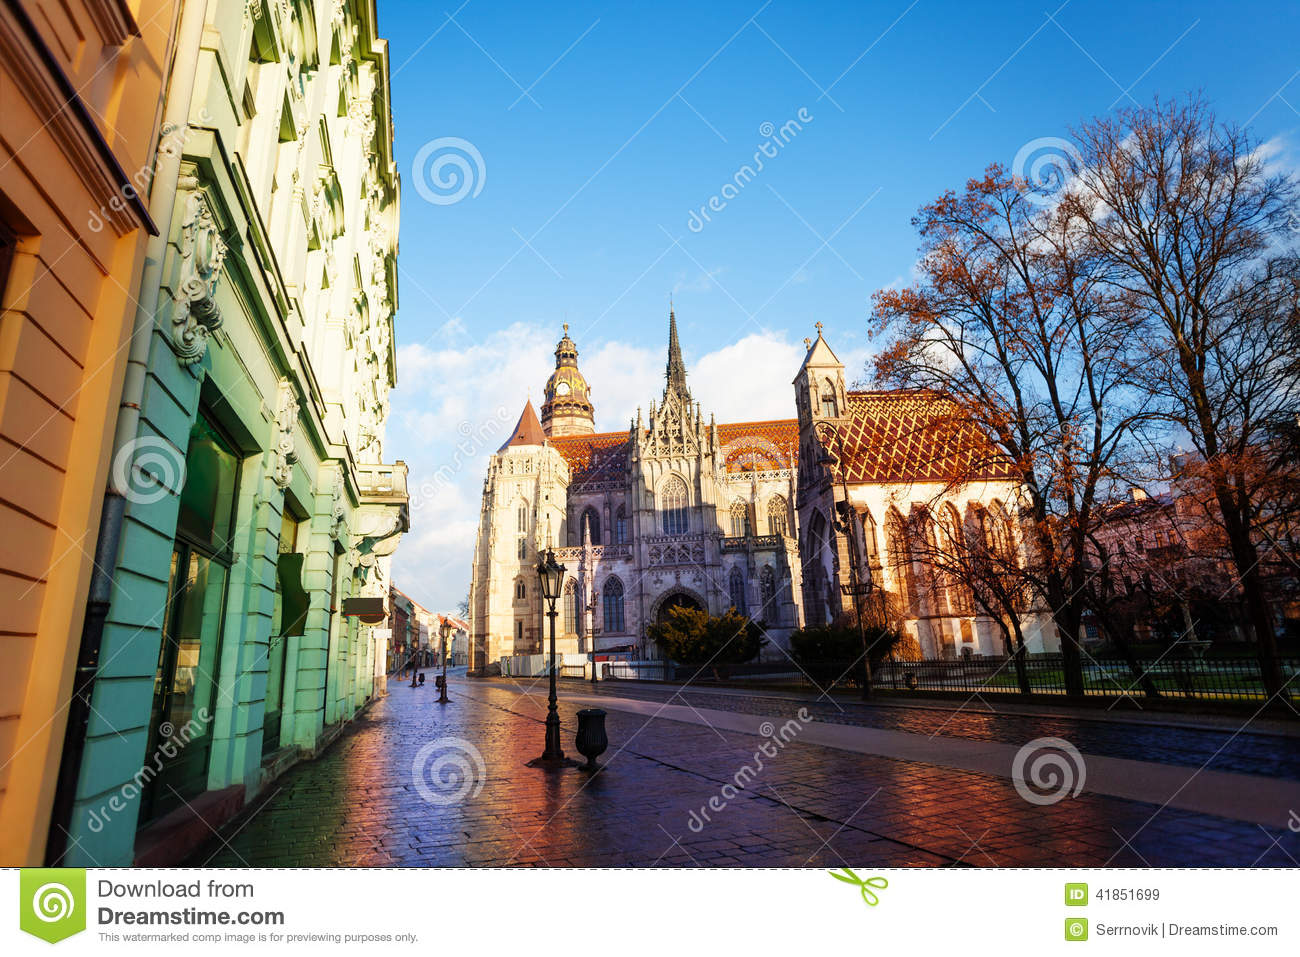 Download St Elisabeth Cathedral In Kosice, Slovakia Stock Image - Image of slovakia, architectural: 41851699